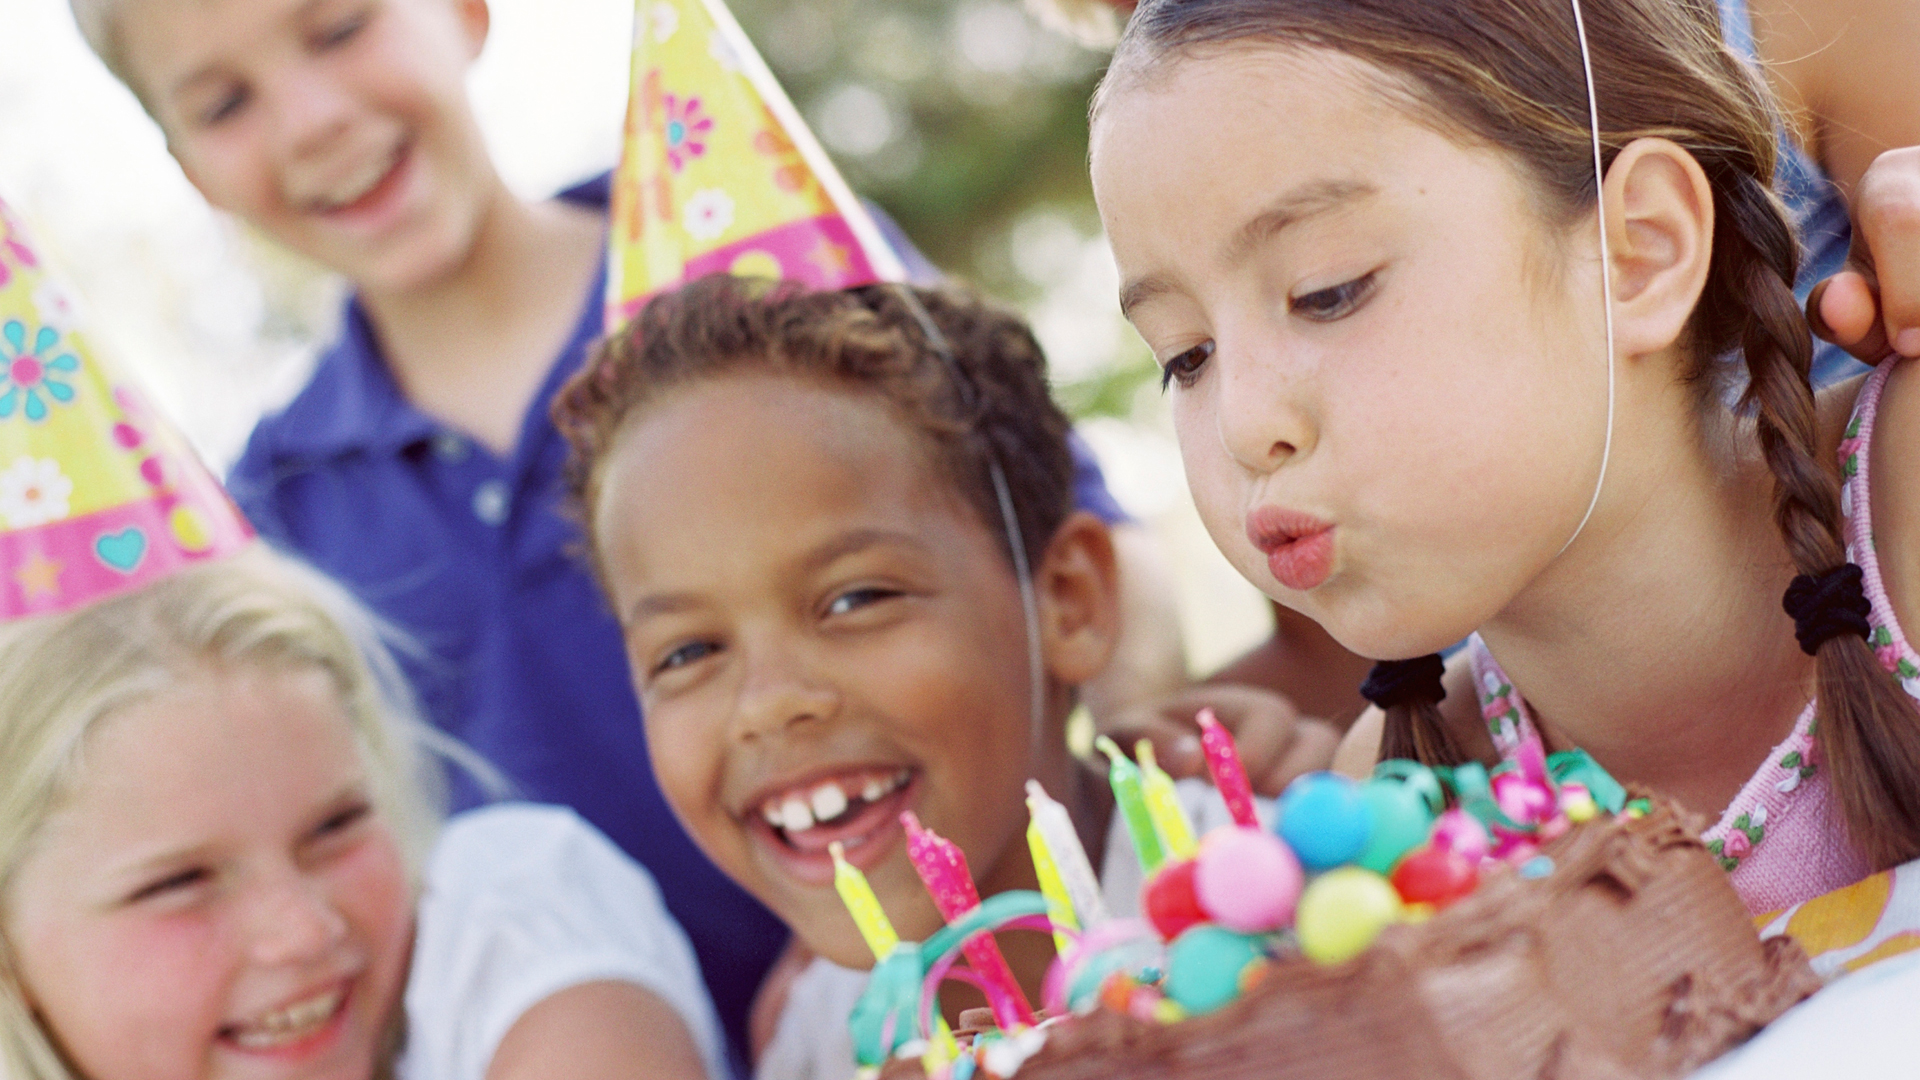 Children's brithday party | Sheknows.com